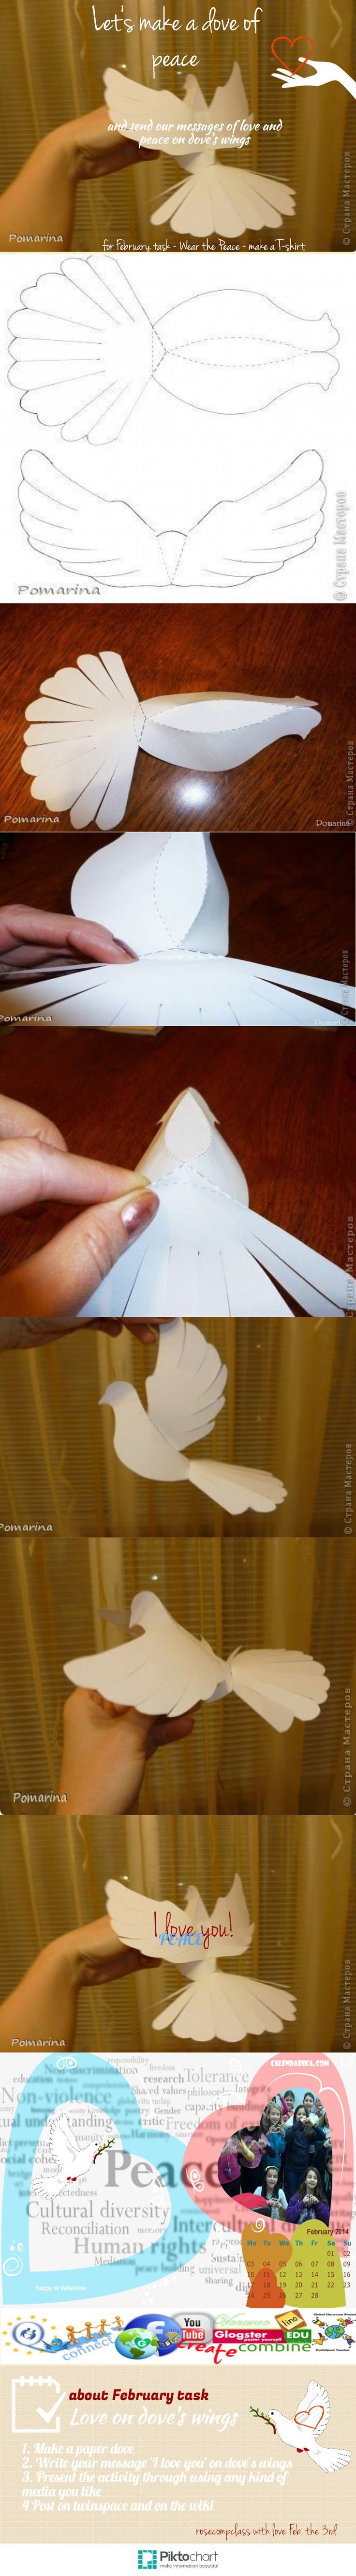 Let's make a dove of peace! February activity - eTwinning peace project   #infographic made in @Piktochart